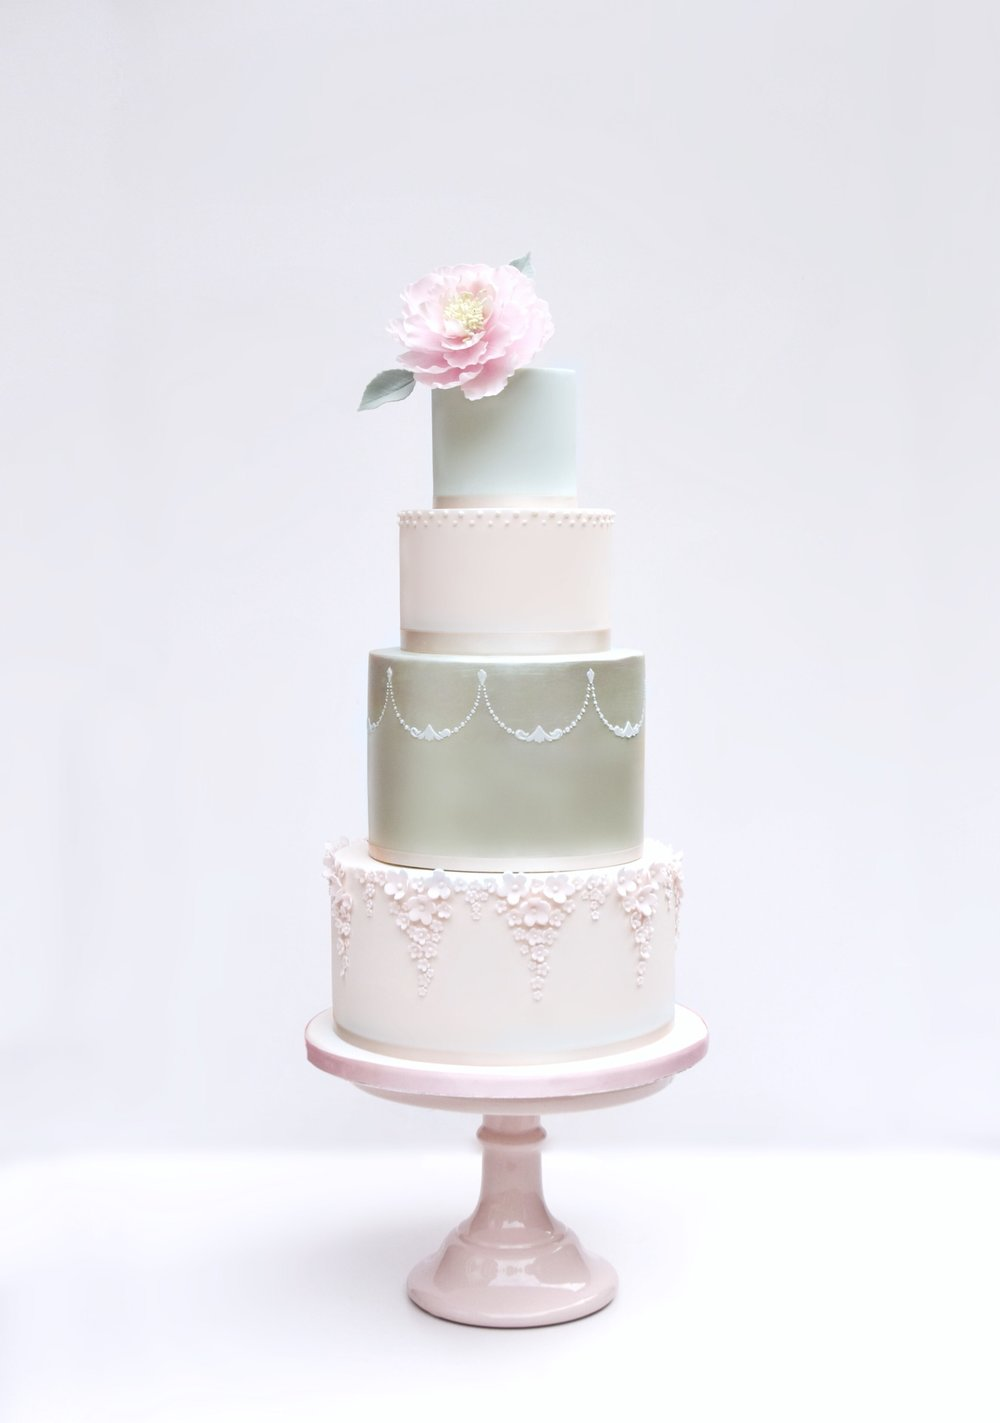 Mint green and blush wedding cake design by Hertfordshire wedding cake company Meadowsweet Cakes